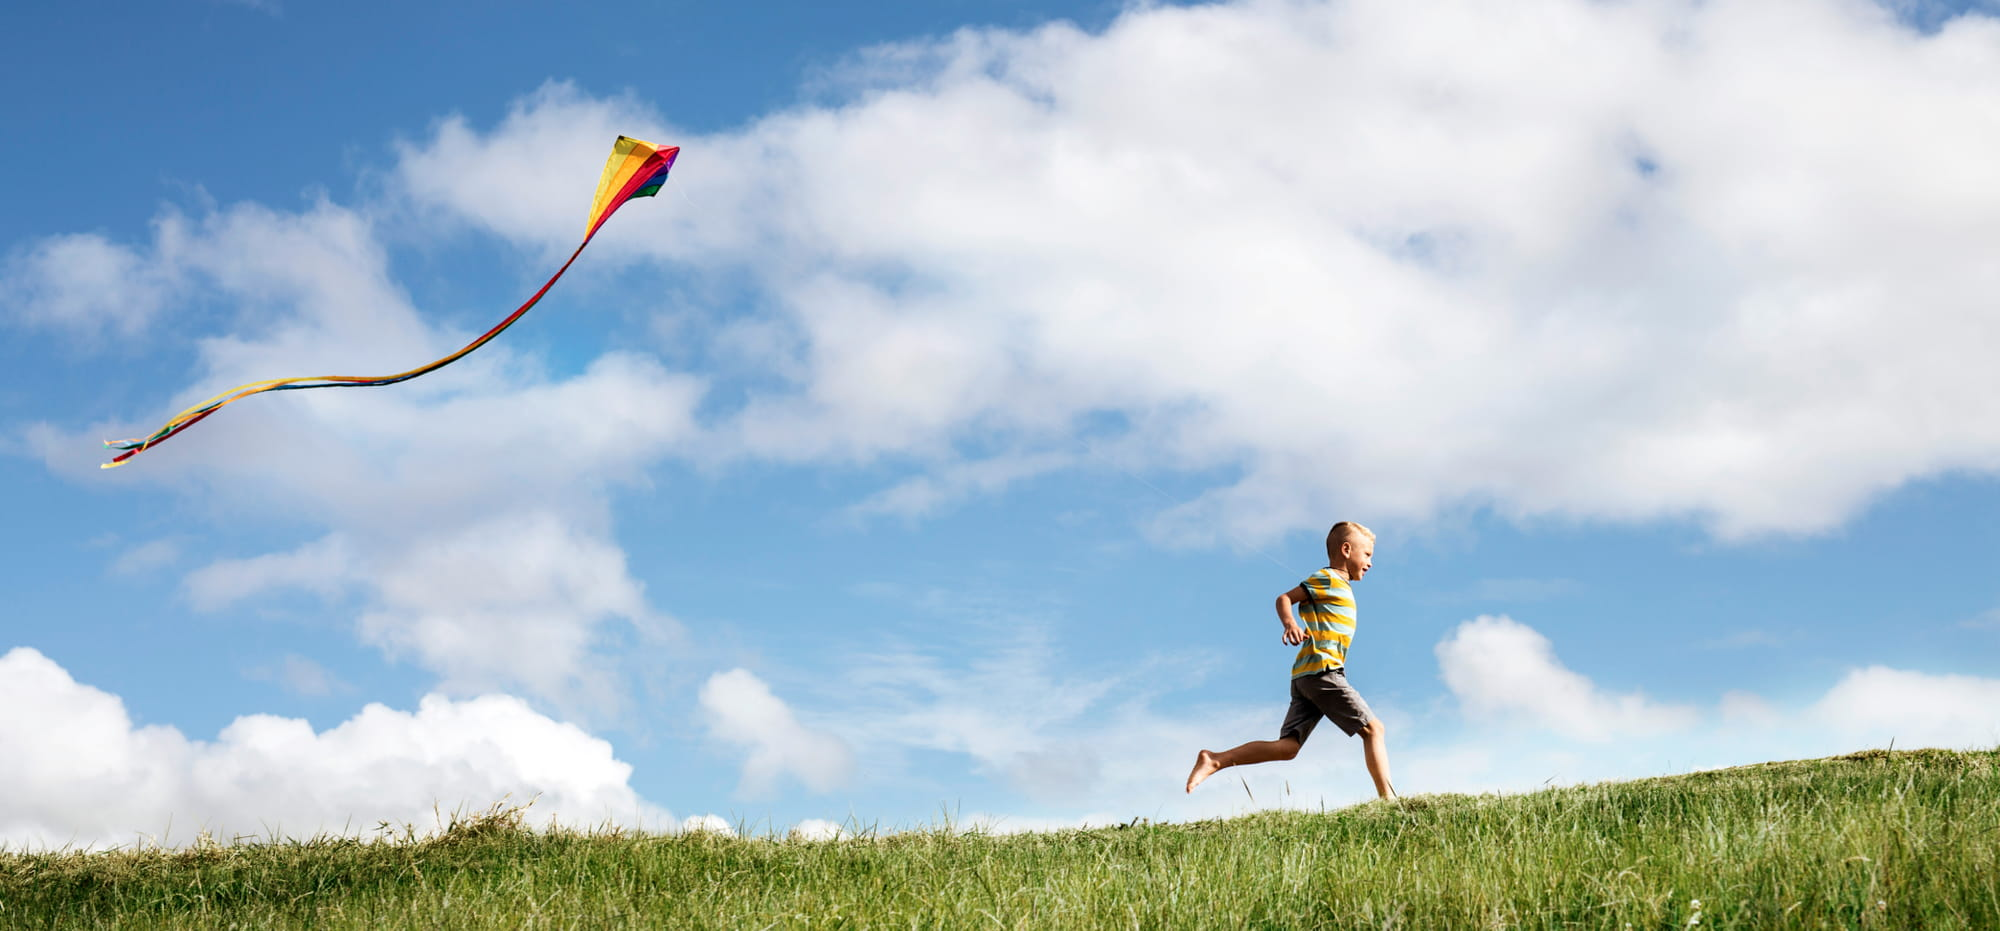 Kid running with kite